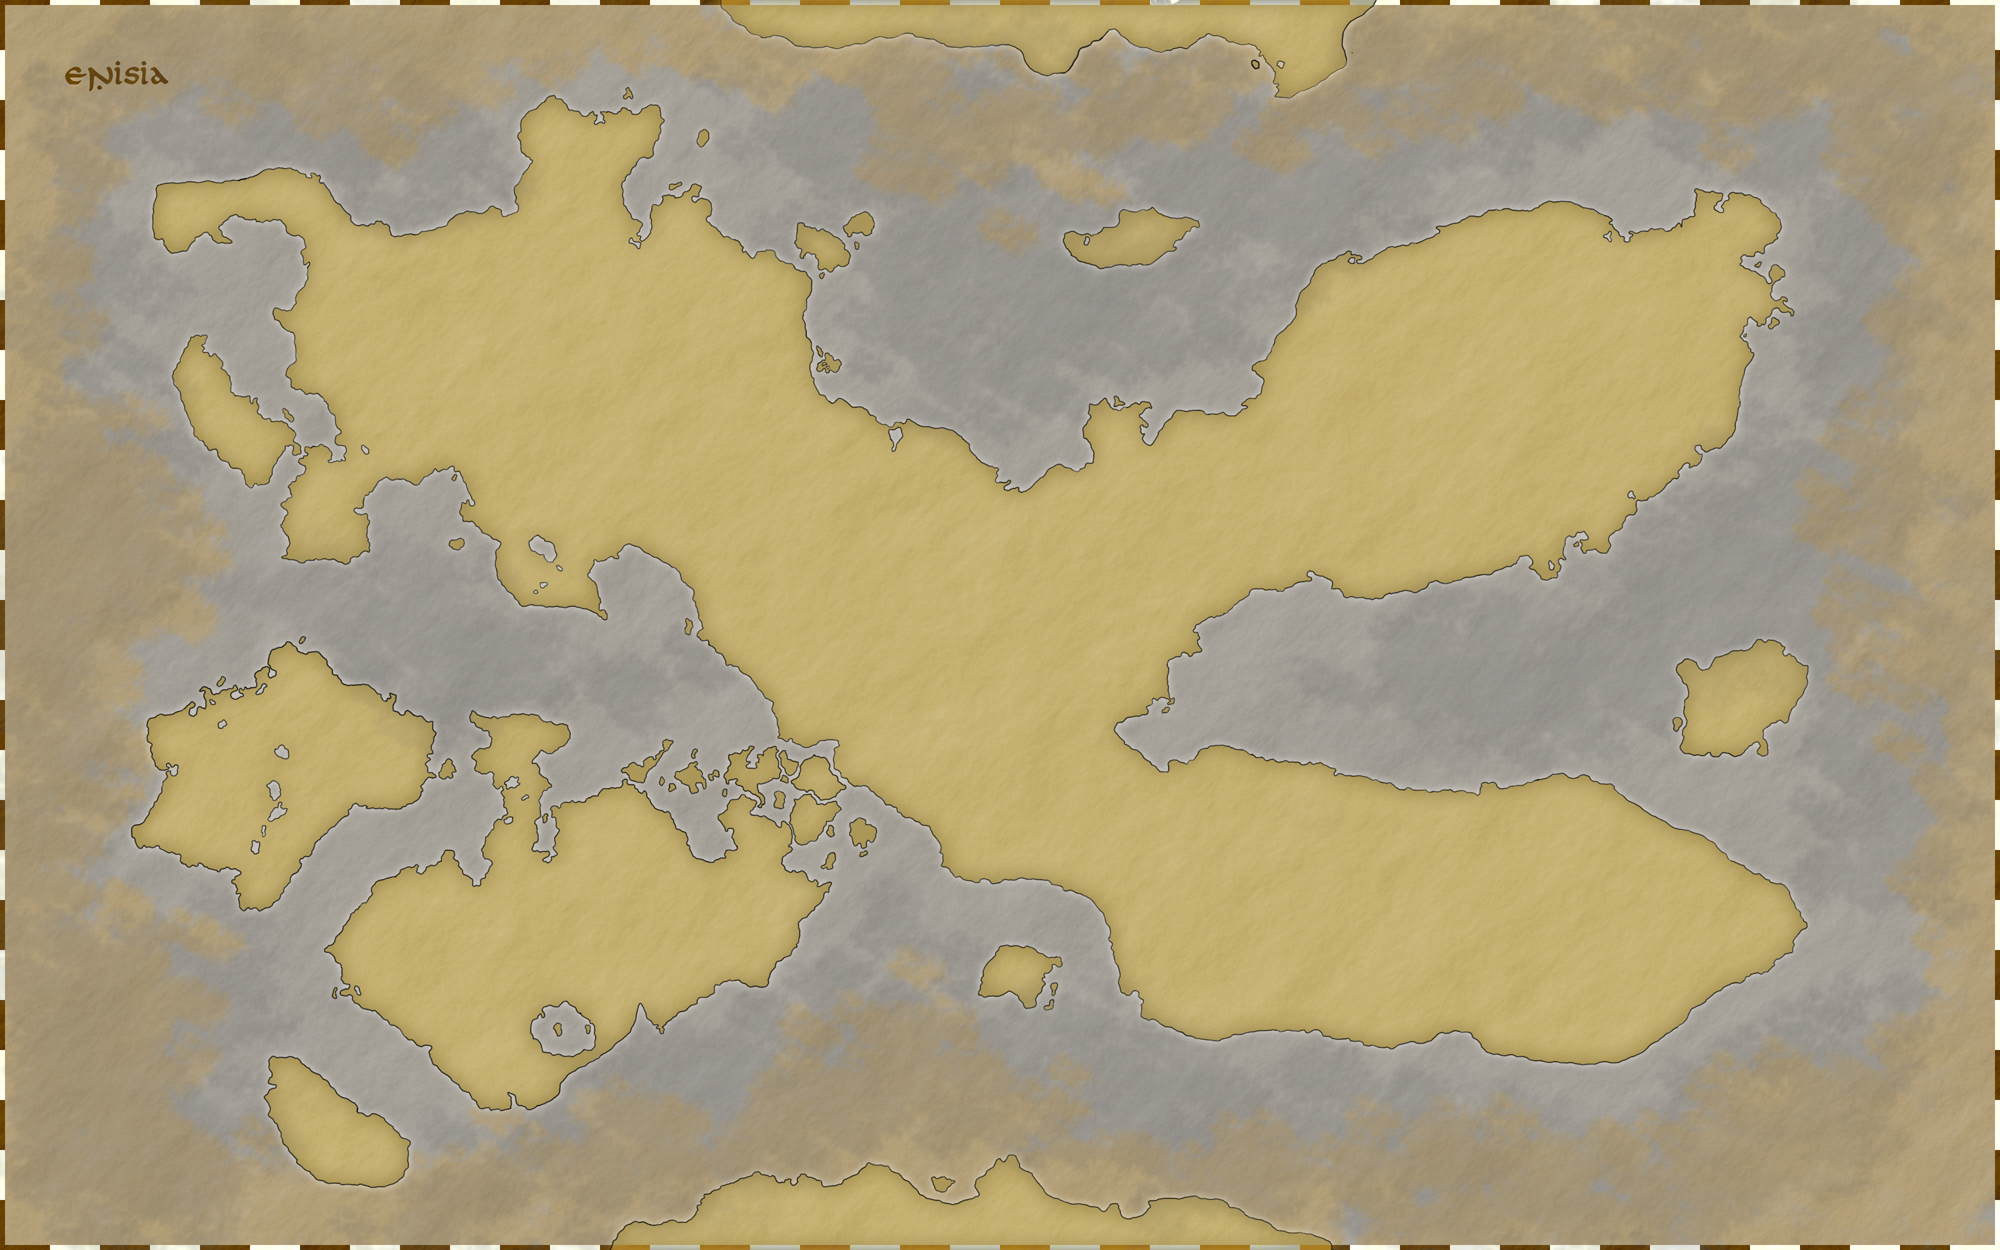 Enisia - World Map v1.0